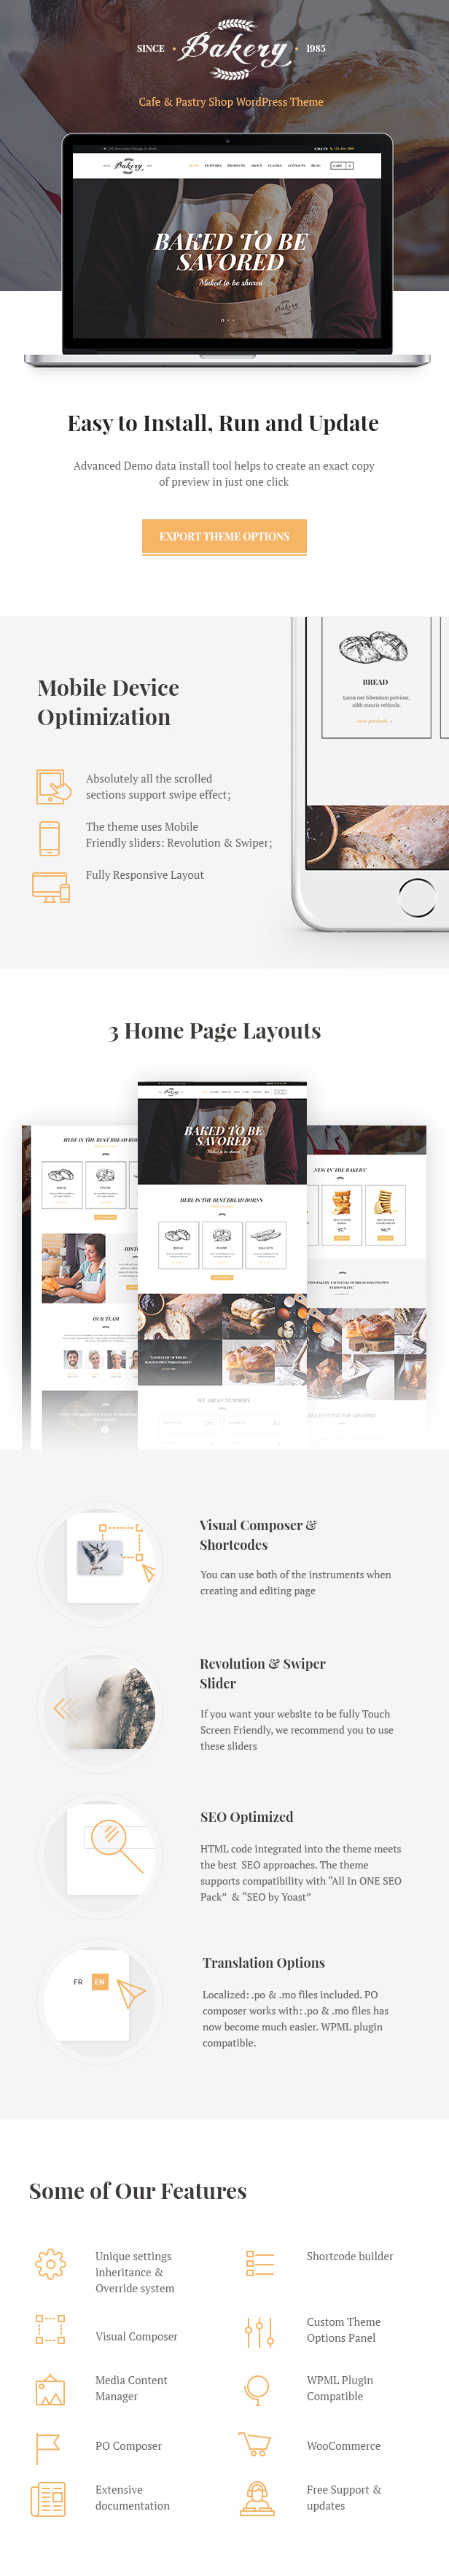 Bakery, Cafe and Pastry Shop WordPress Theme features